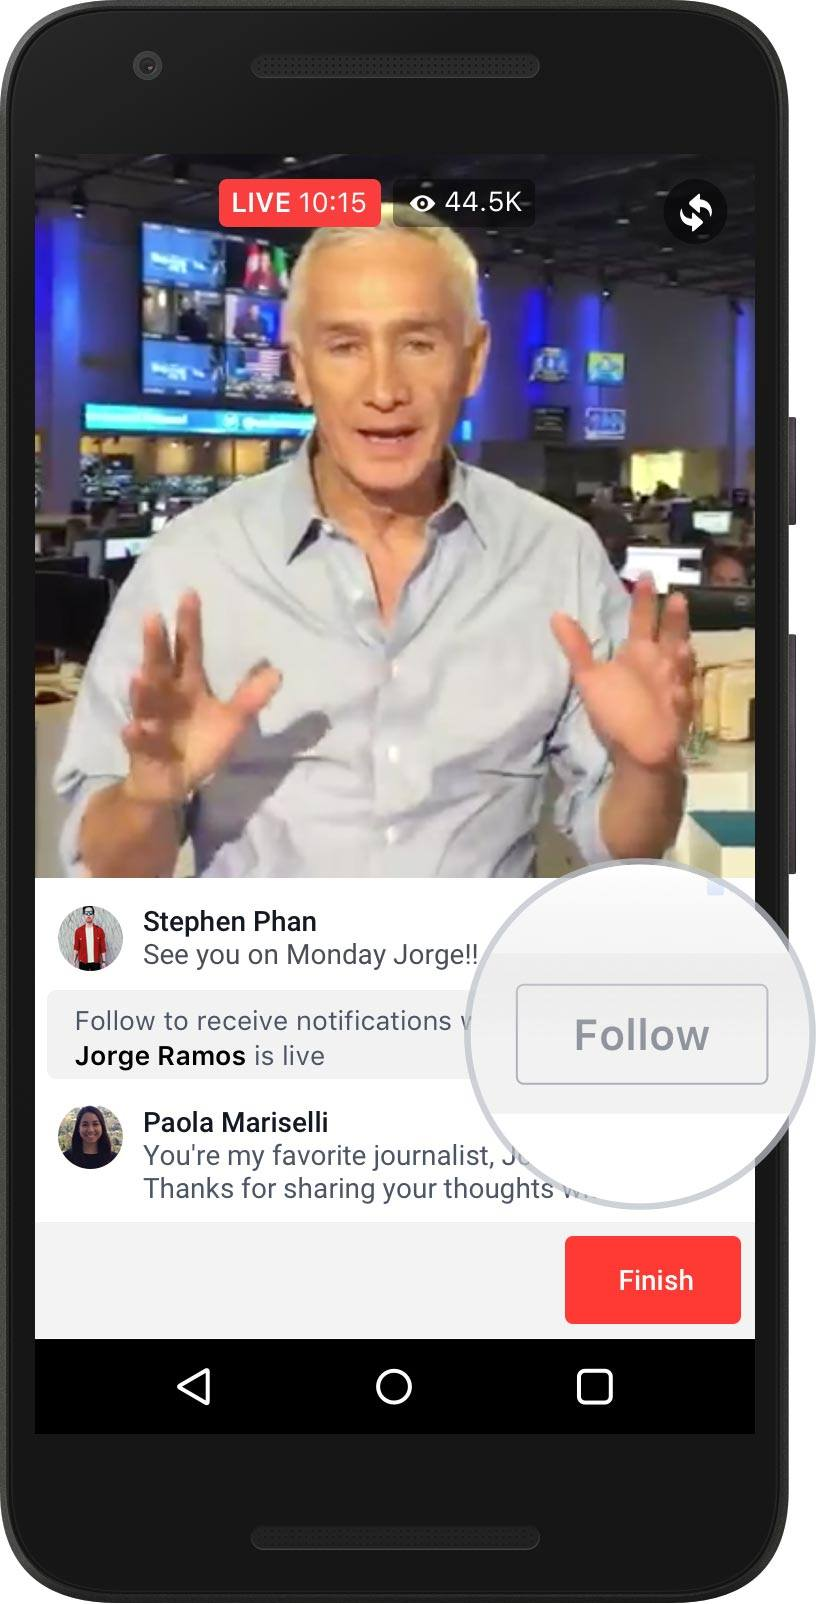 'Follow' button on live video so users can receive notifications when you're next live